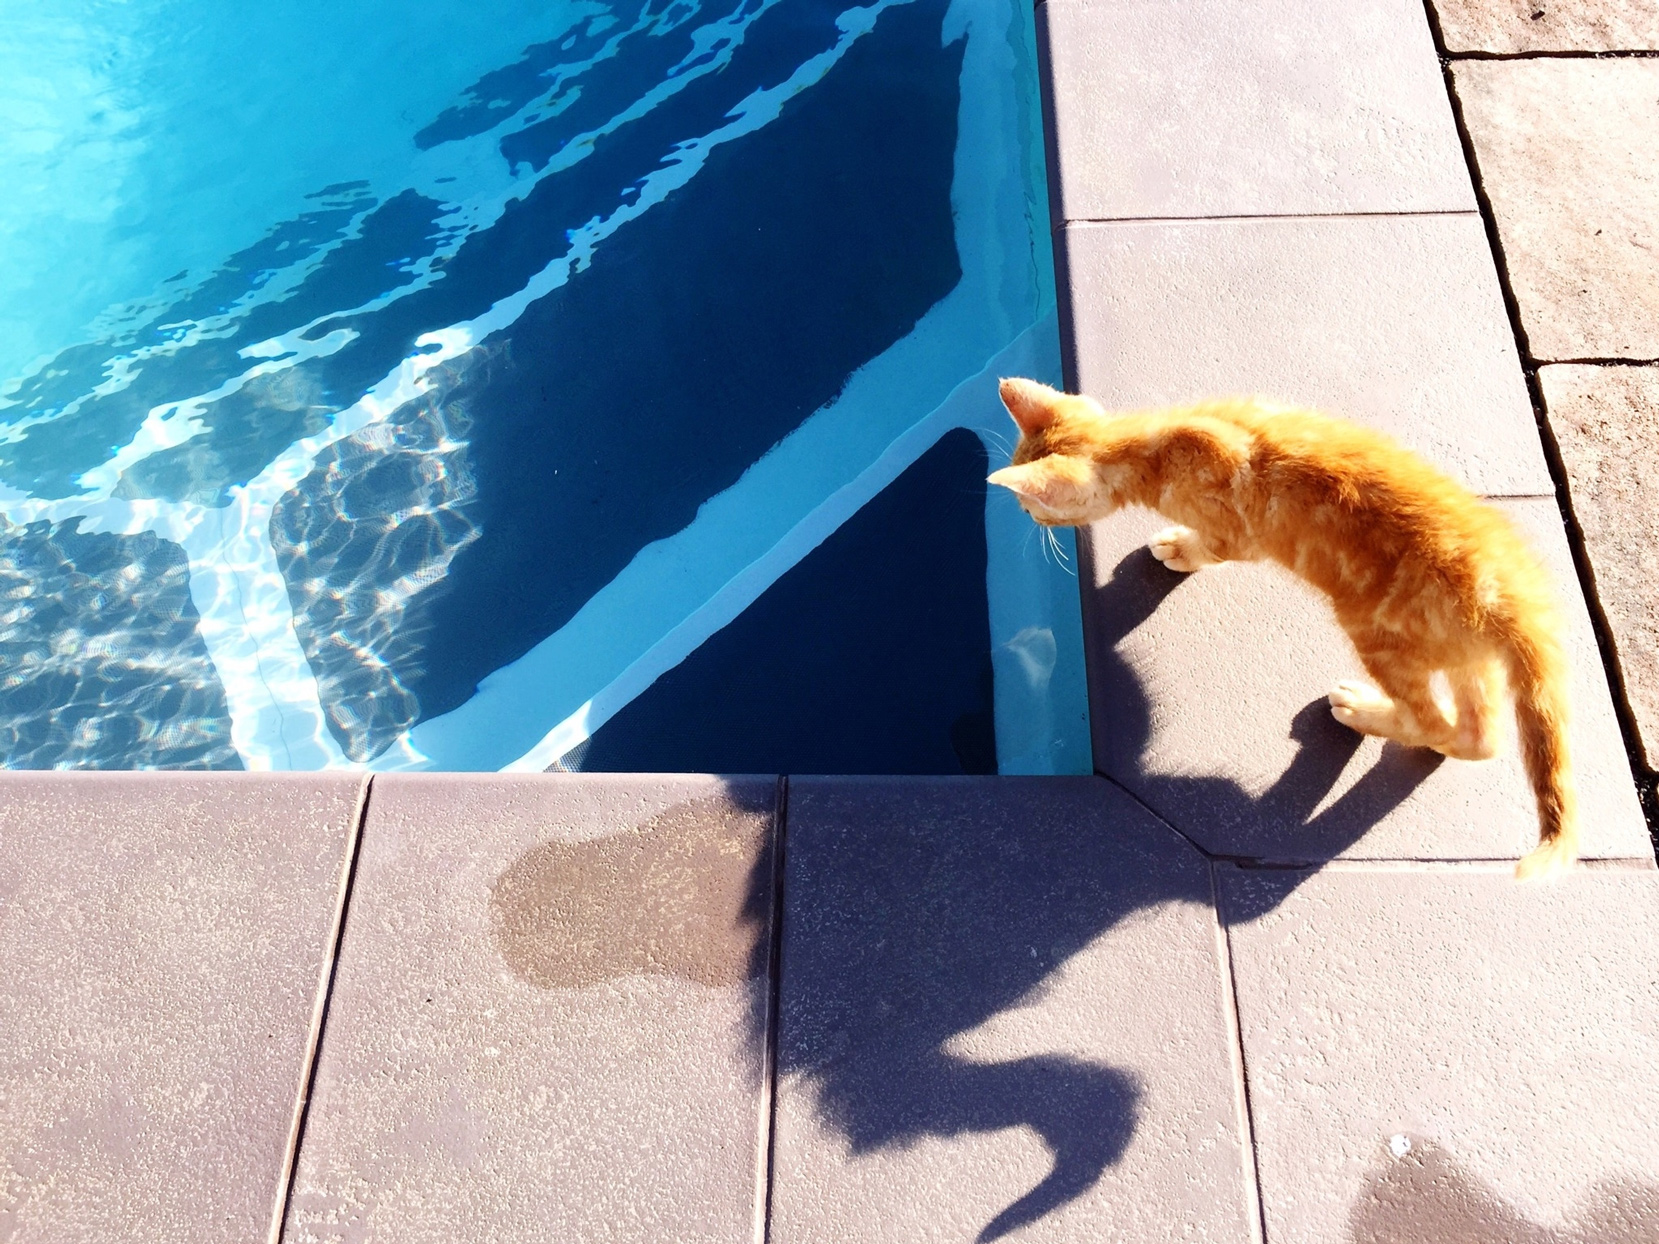 small ginger cat walking by outdoor pool